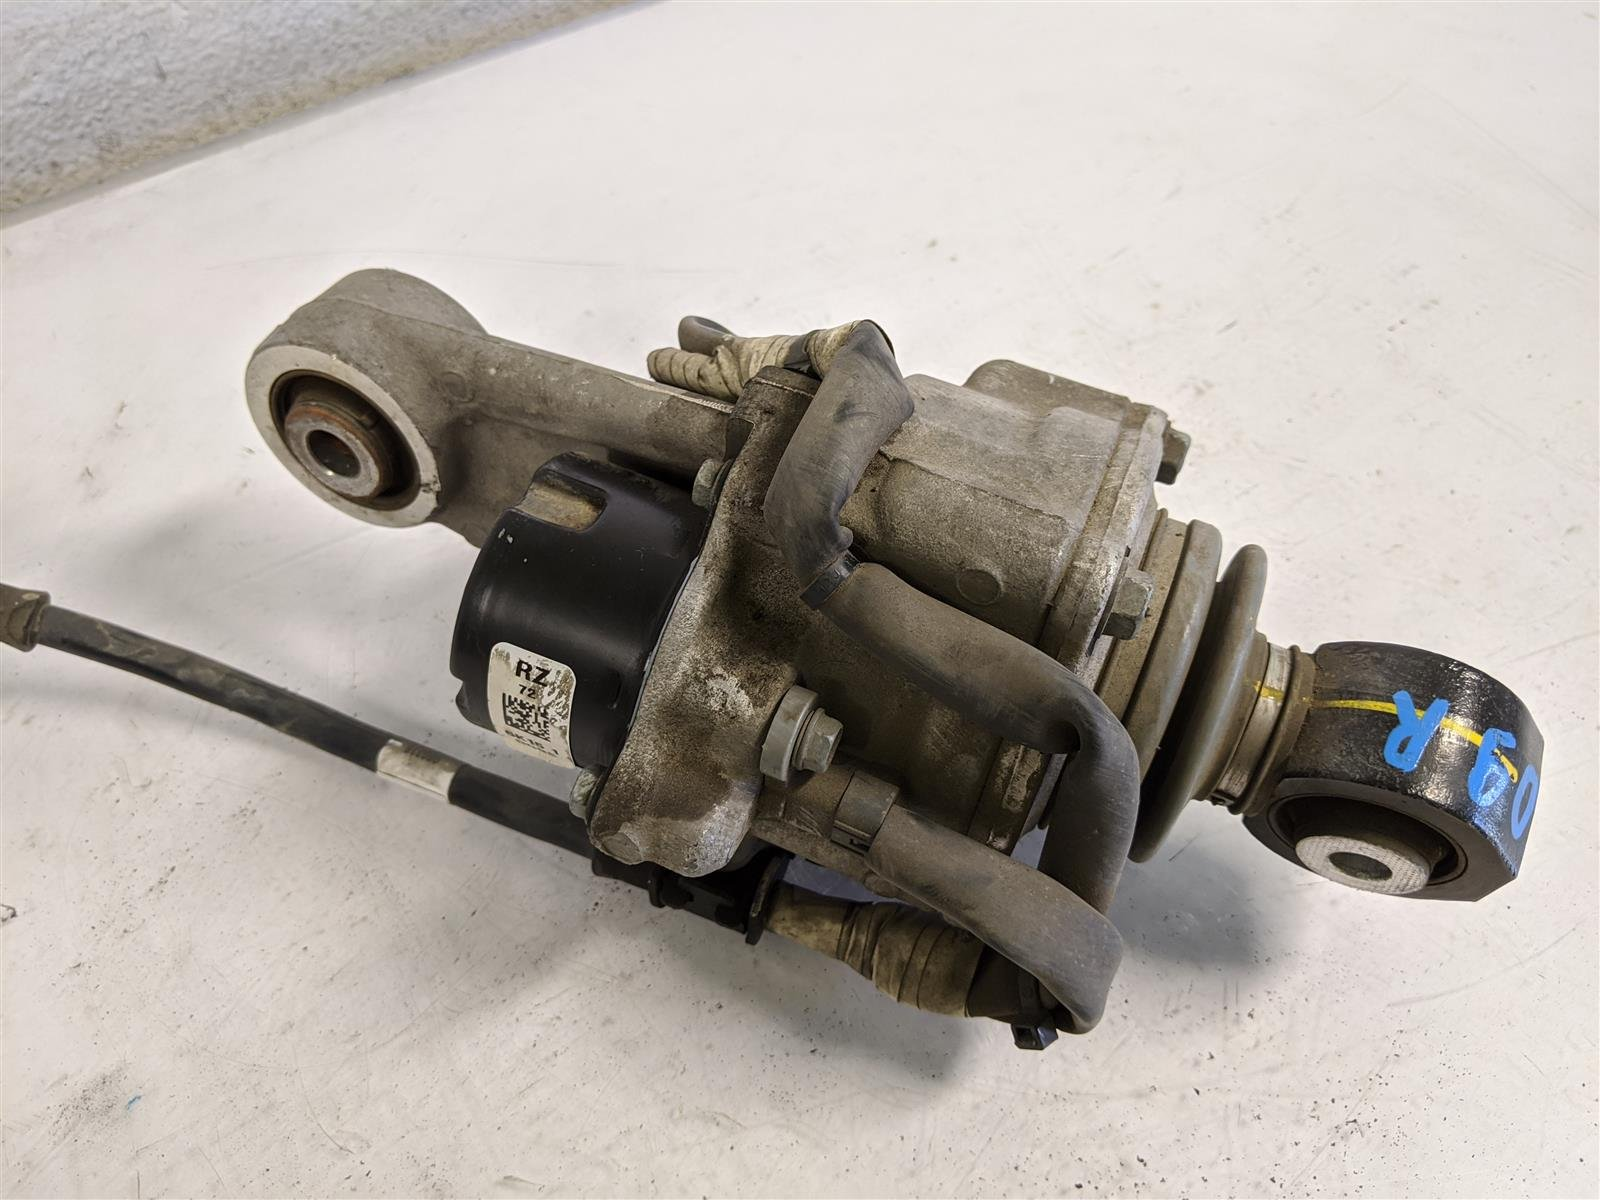 2017 Acura TLX Rear Passenger Actuator Arm Replacement